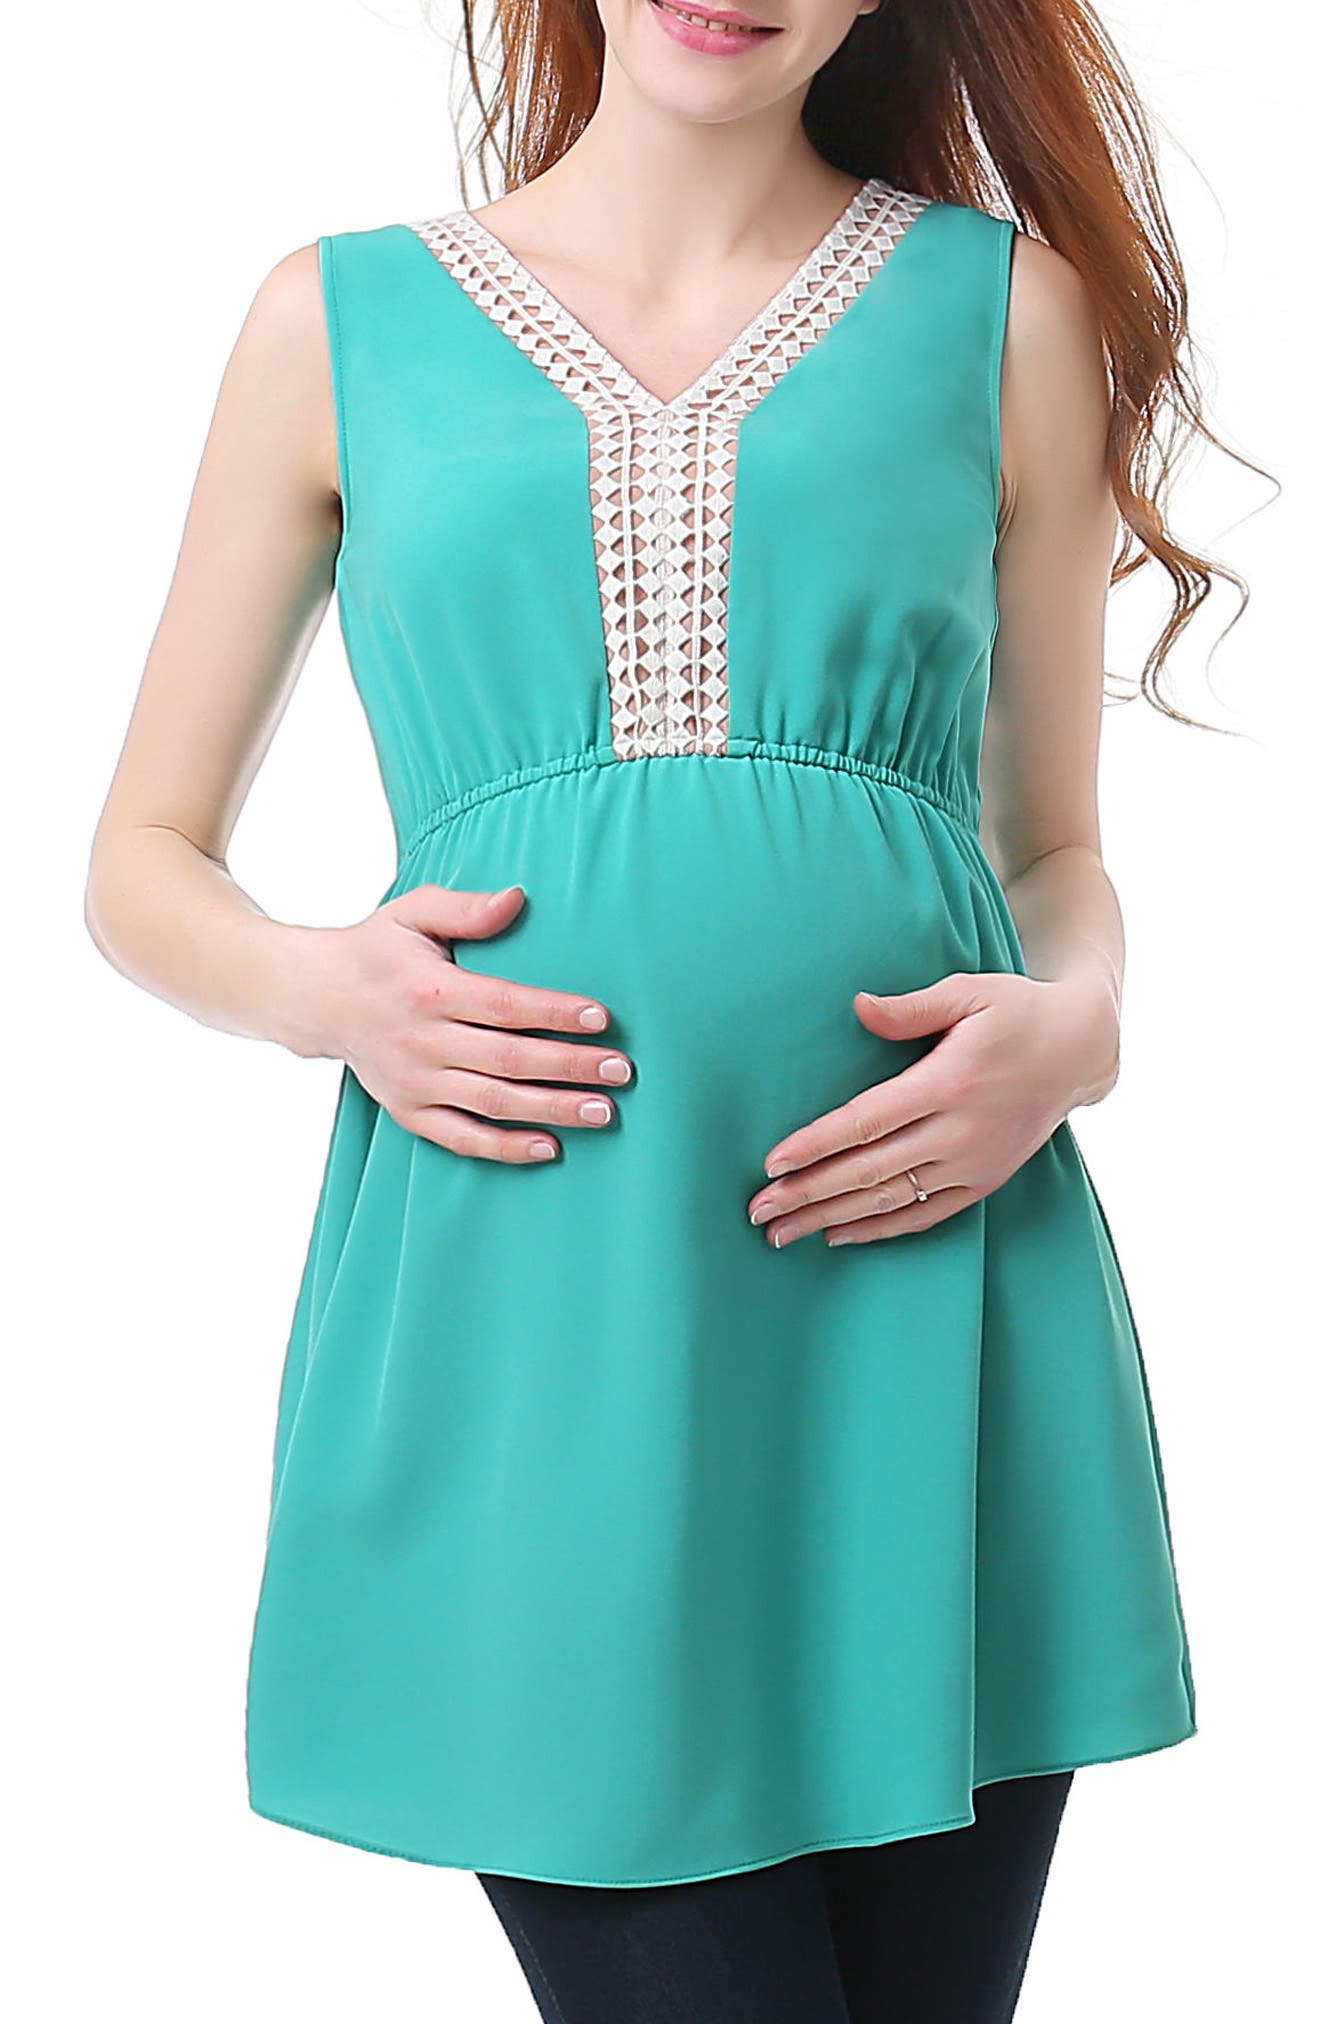 Darla Lace Inset Maternity Top,                             Main thumbnail 1, color,                             TEAL